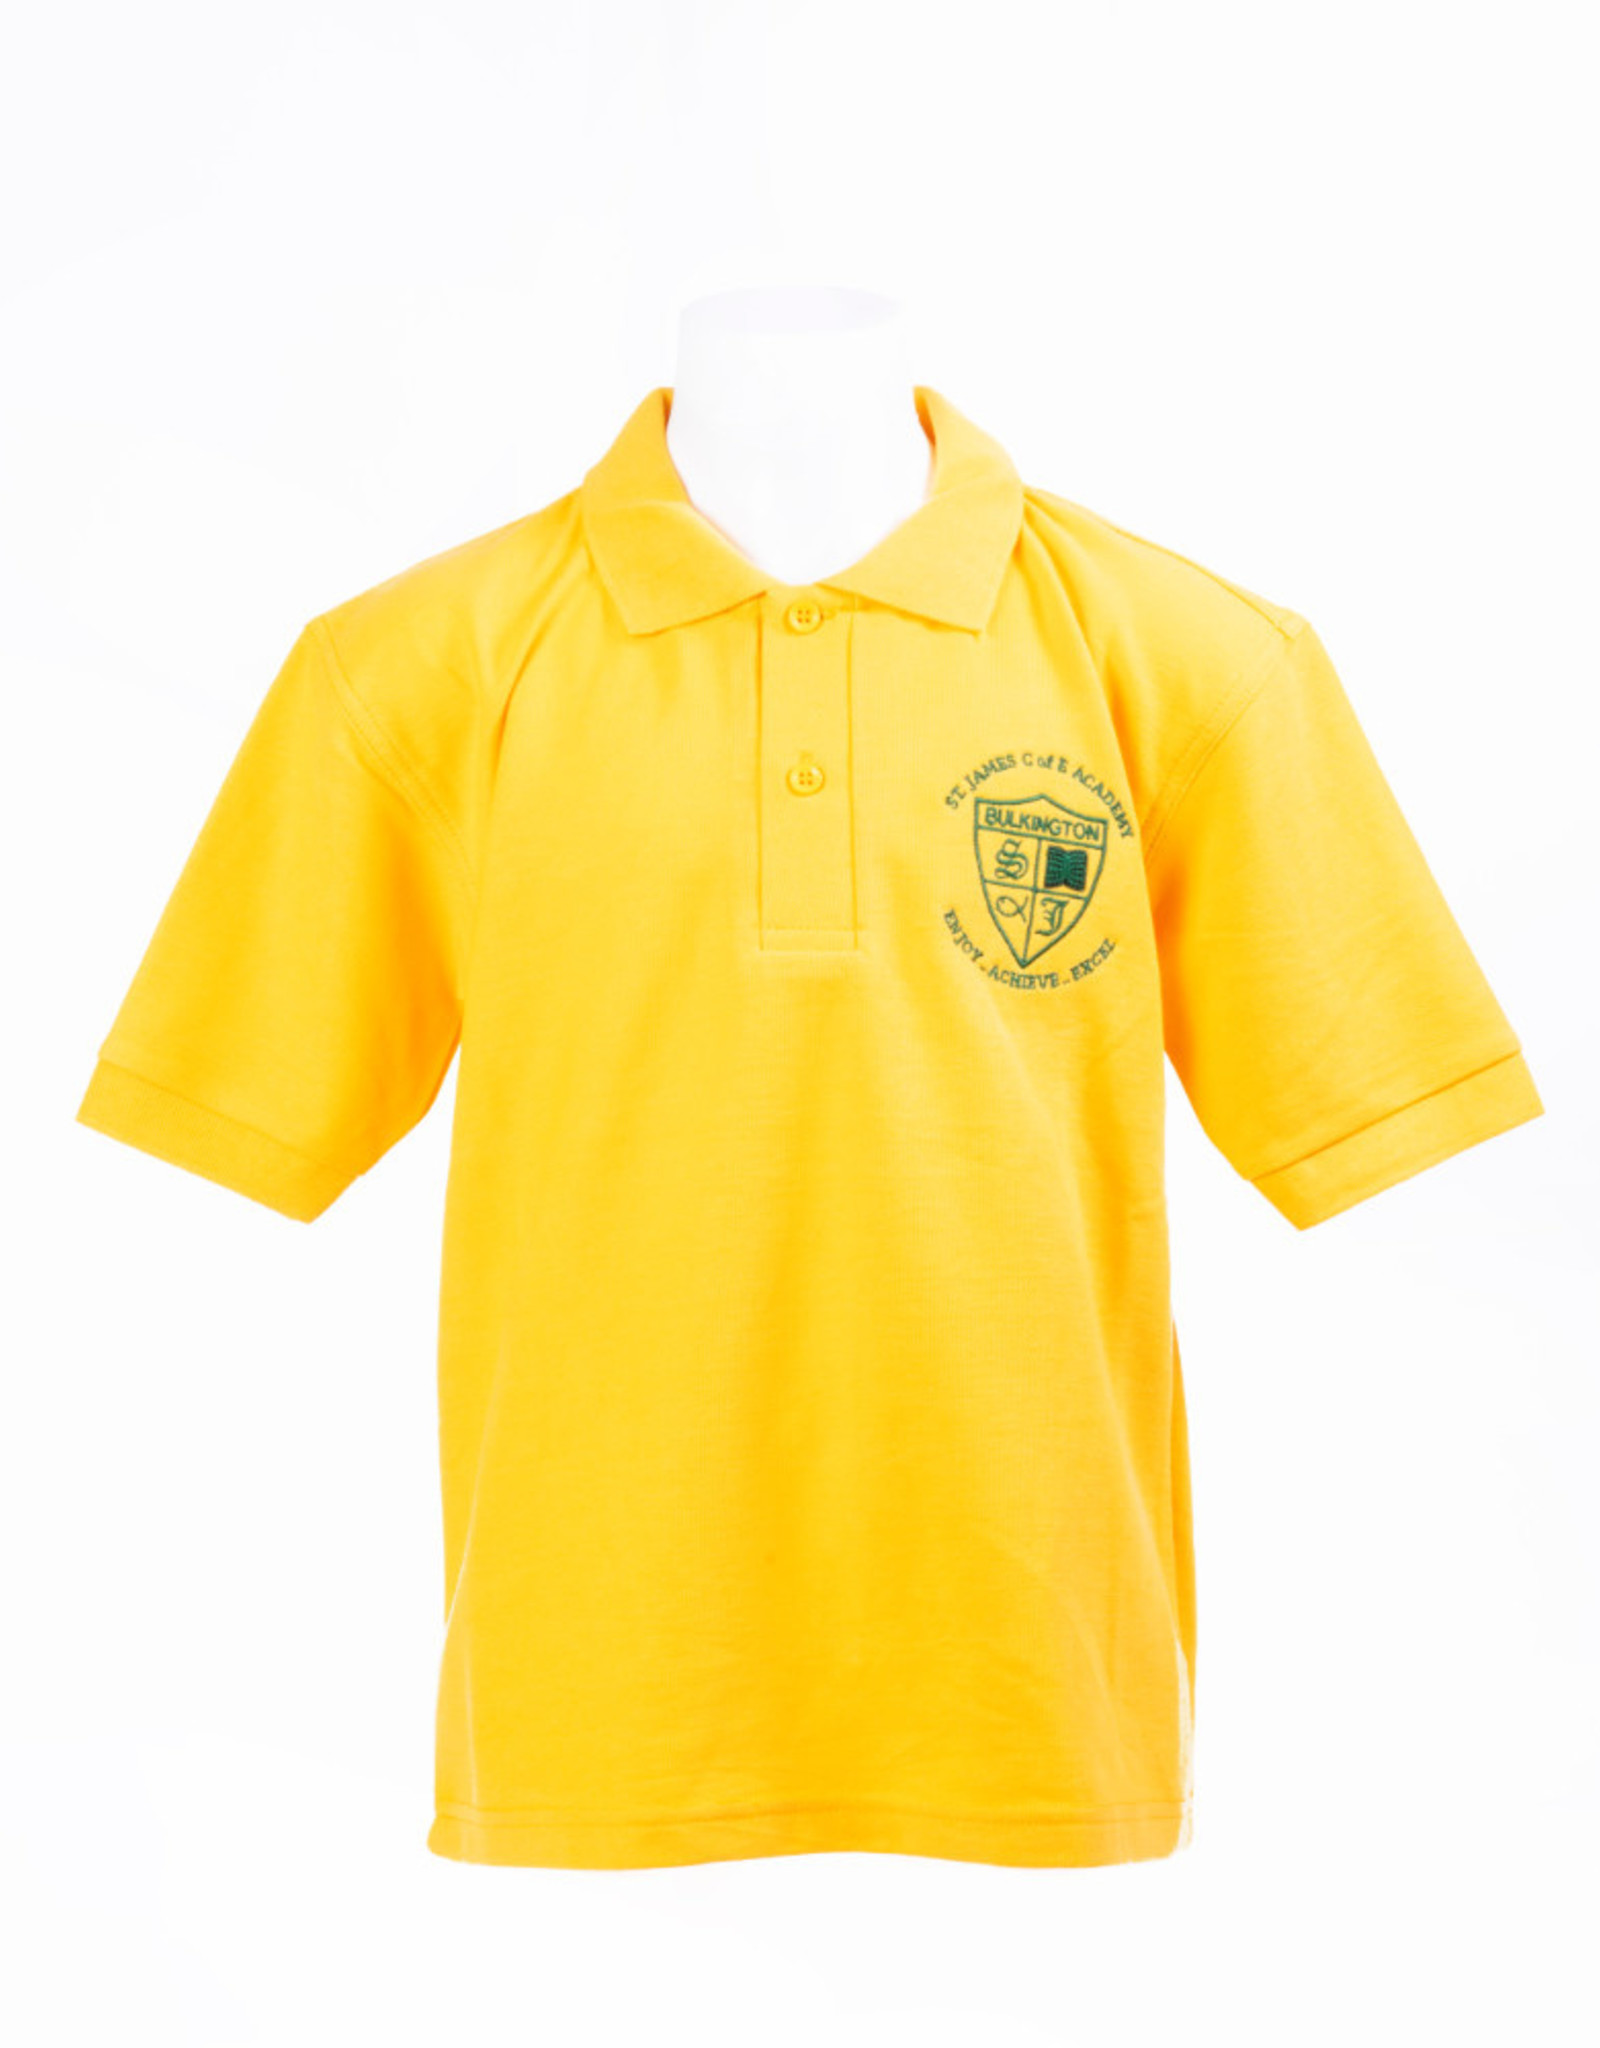 Polo-Shirt Adult Size (Gold) - St James CE Academy